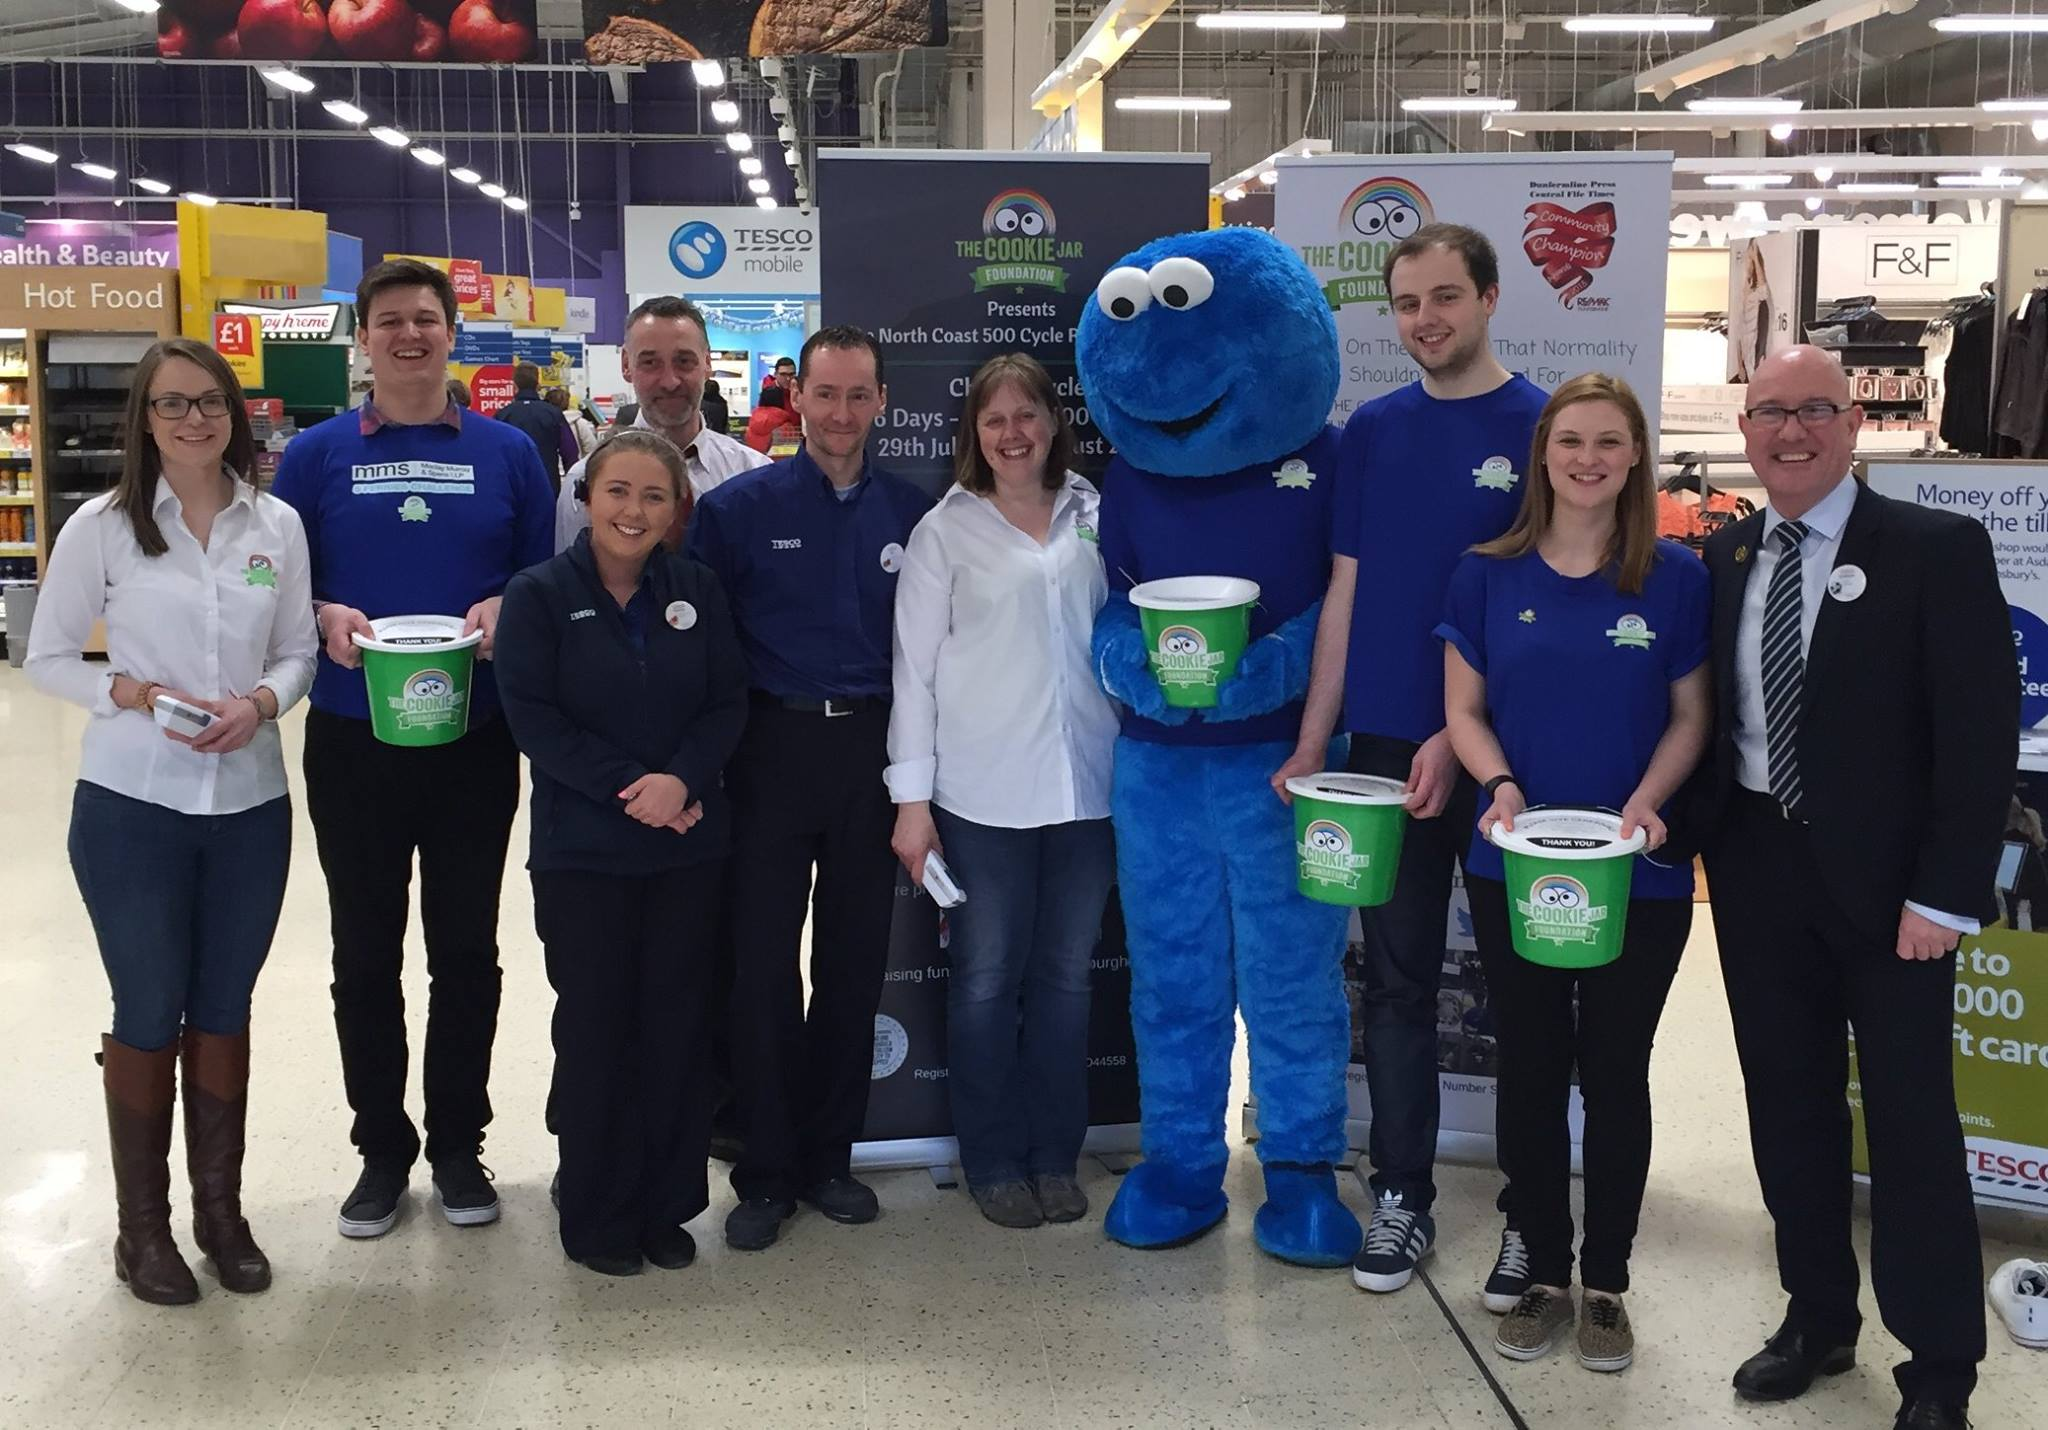 Team Cookie Fundraising at Tesco Hermiston Gait